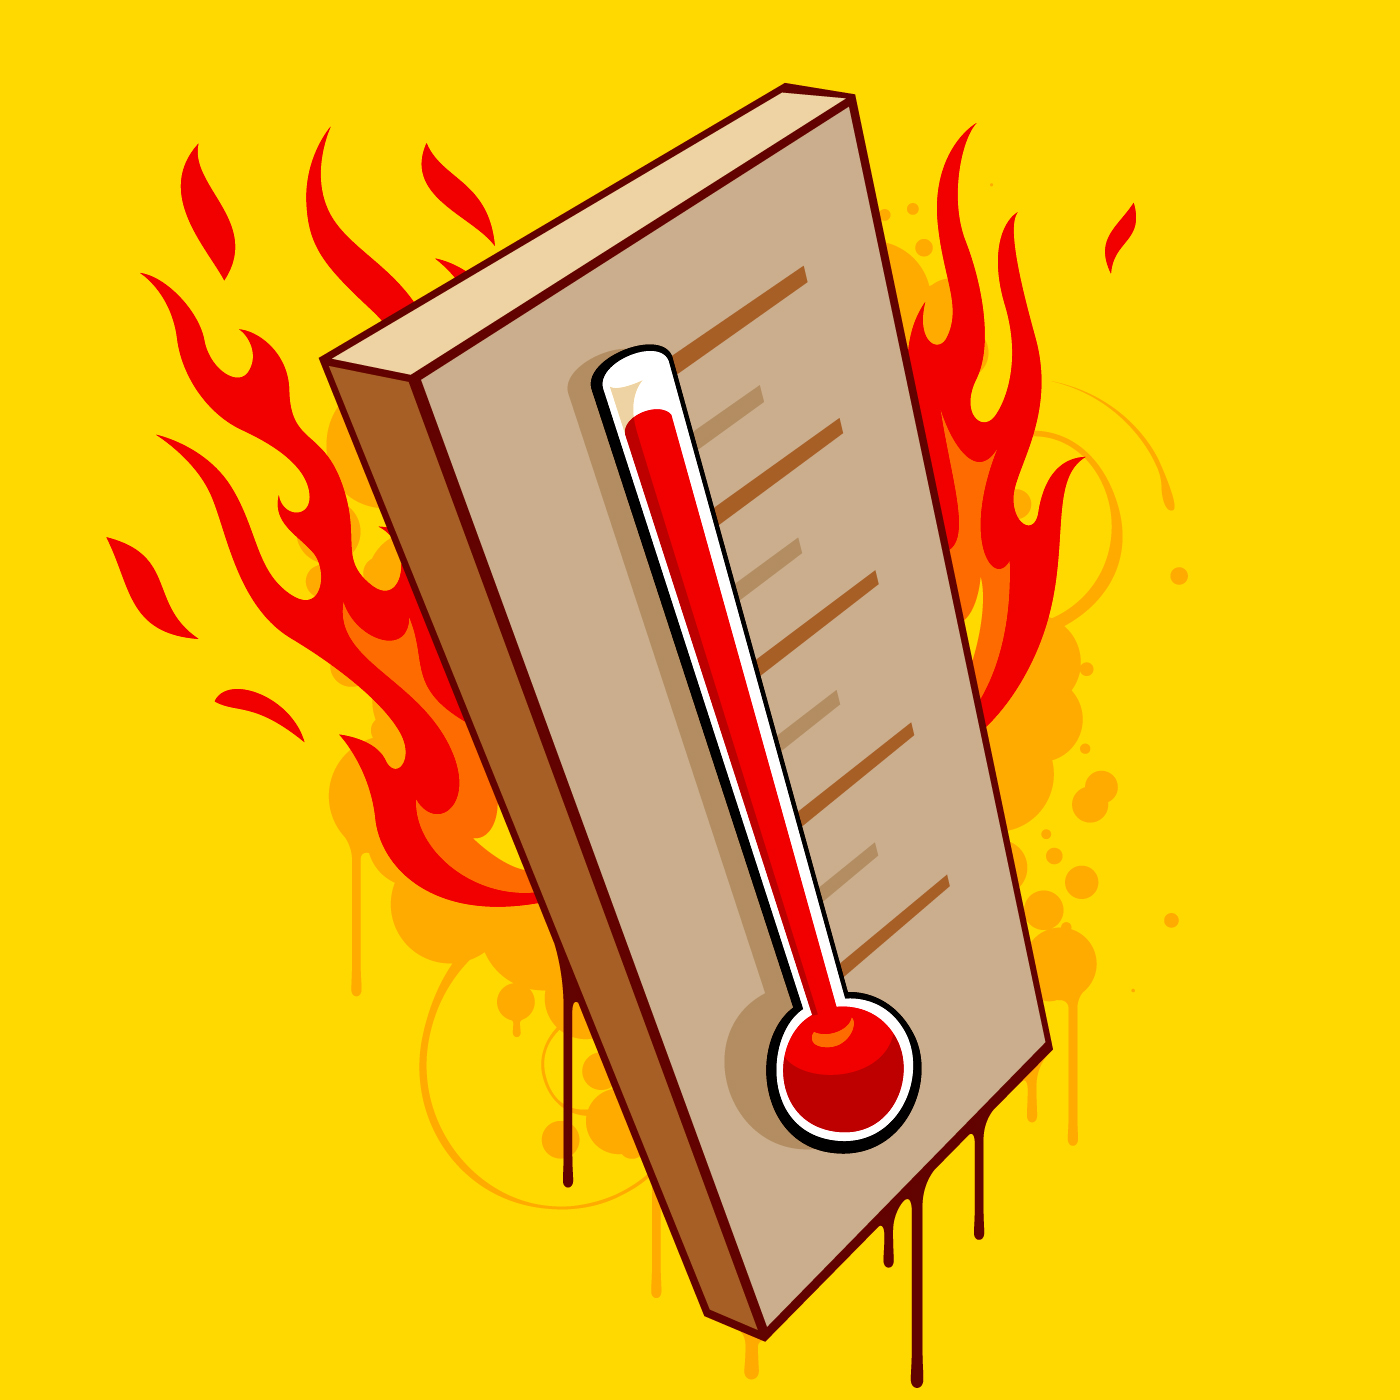 The meaning and symbolism of the word - Heat